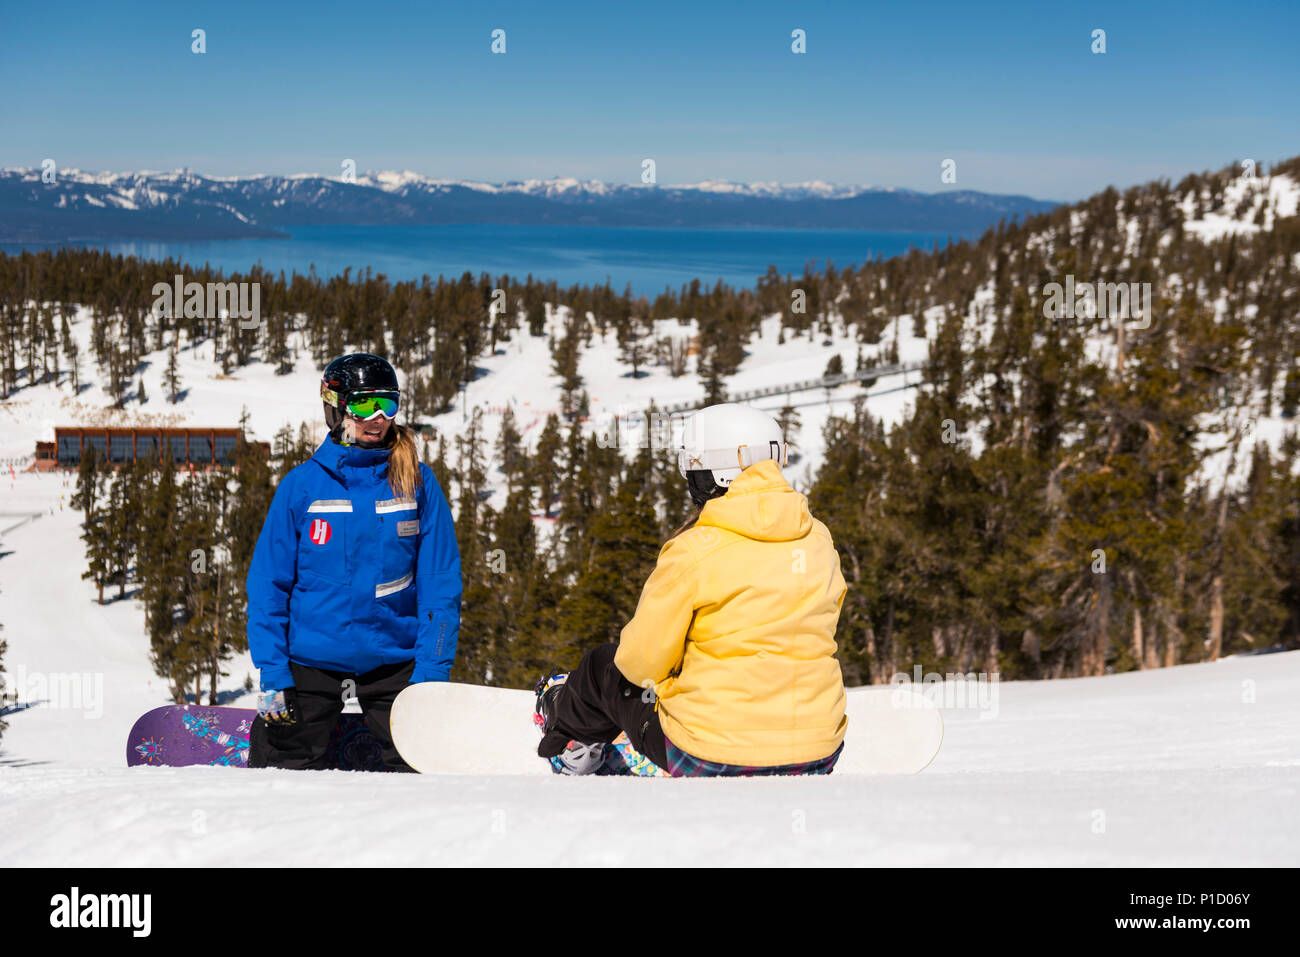 Heavenly Valley snowboarding school private lessons with lake tahoe view in south lake tahoe, California, North America Stock Photo